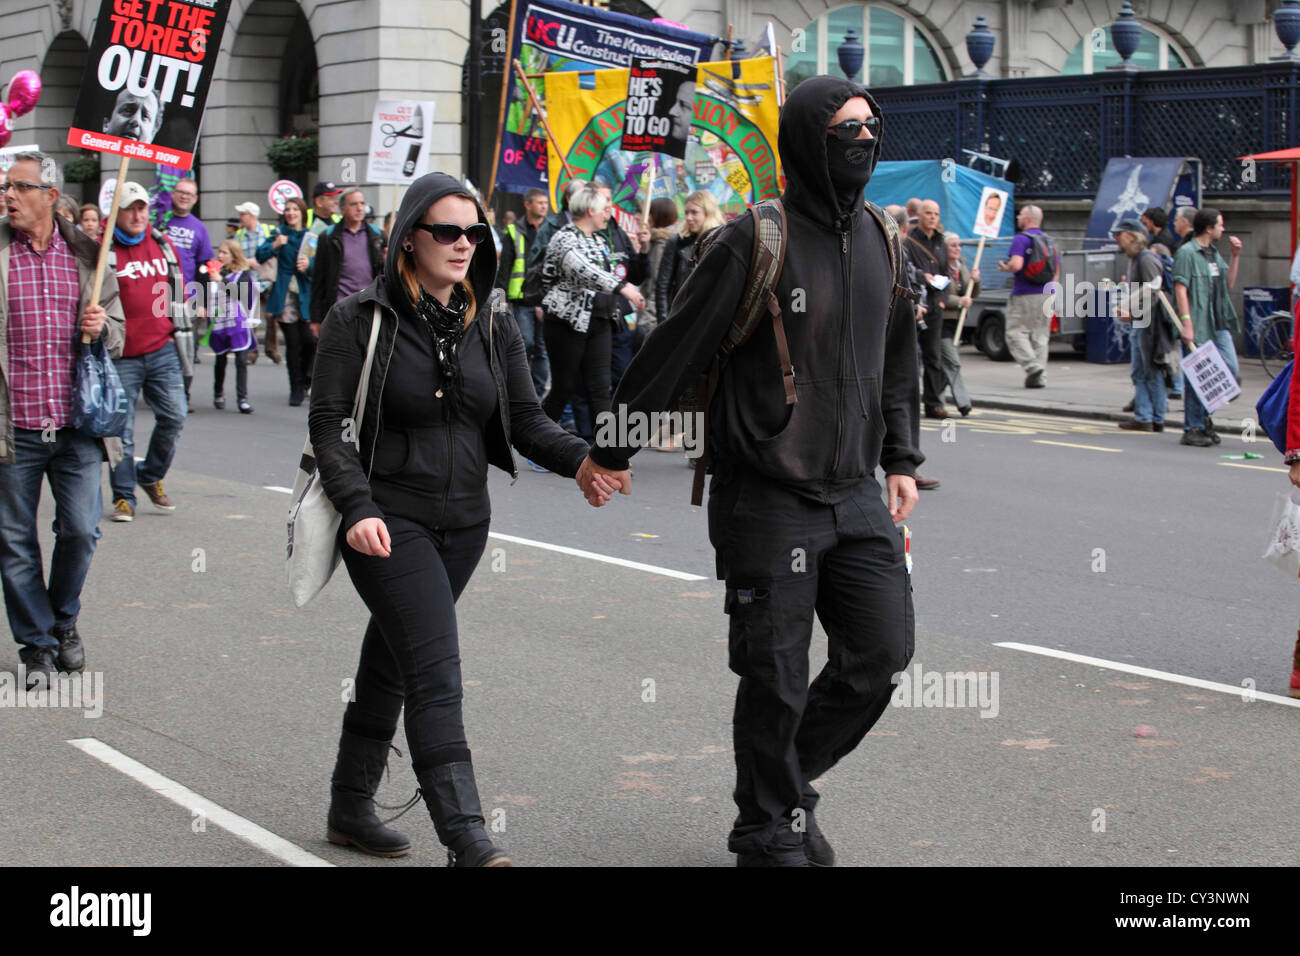 Black bloc flag anarchist protester couple at Anti-Austerity March, Piccadilly central London, UK. A Future That - Stock Image